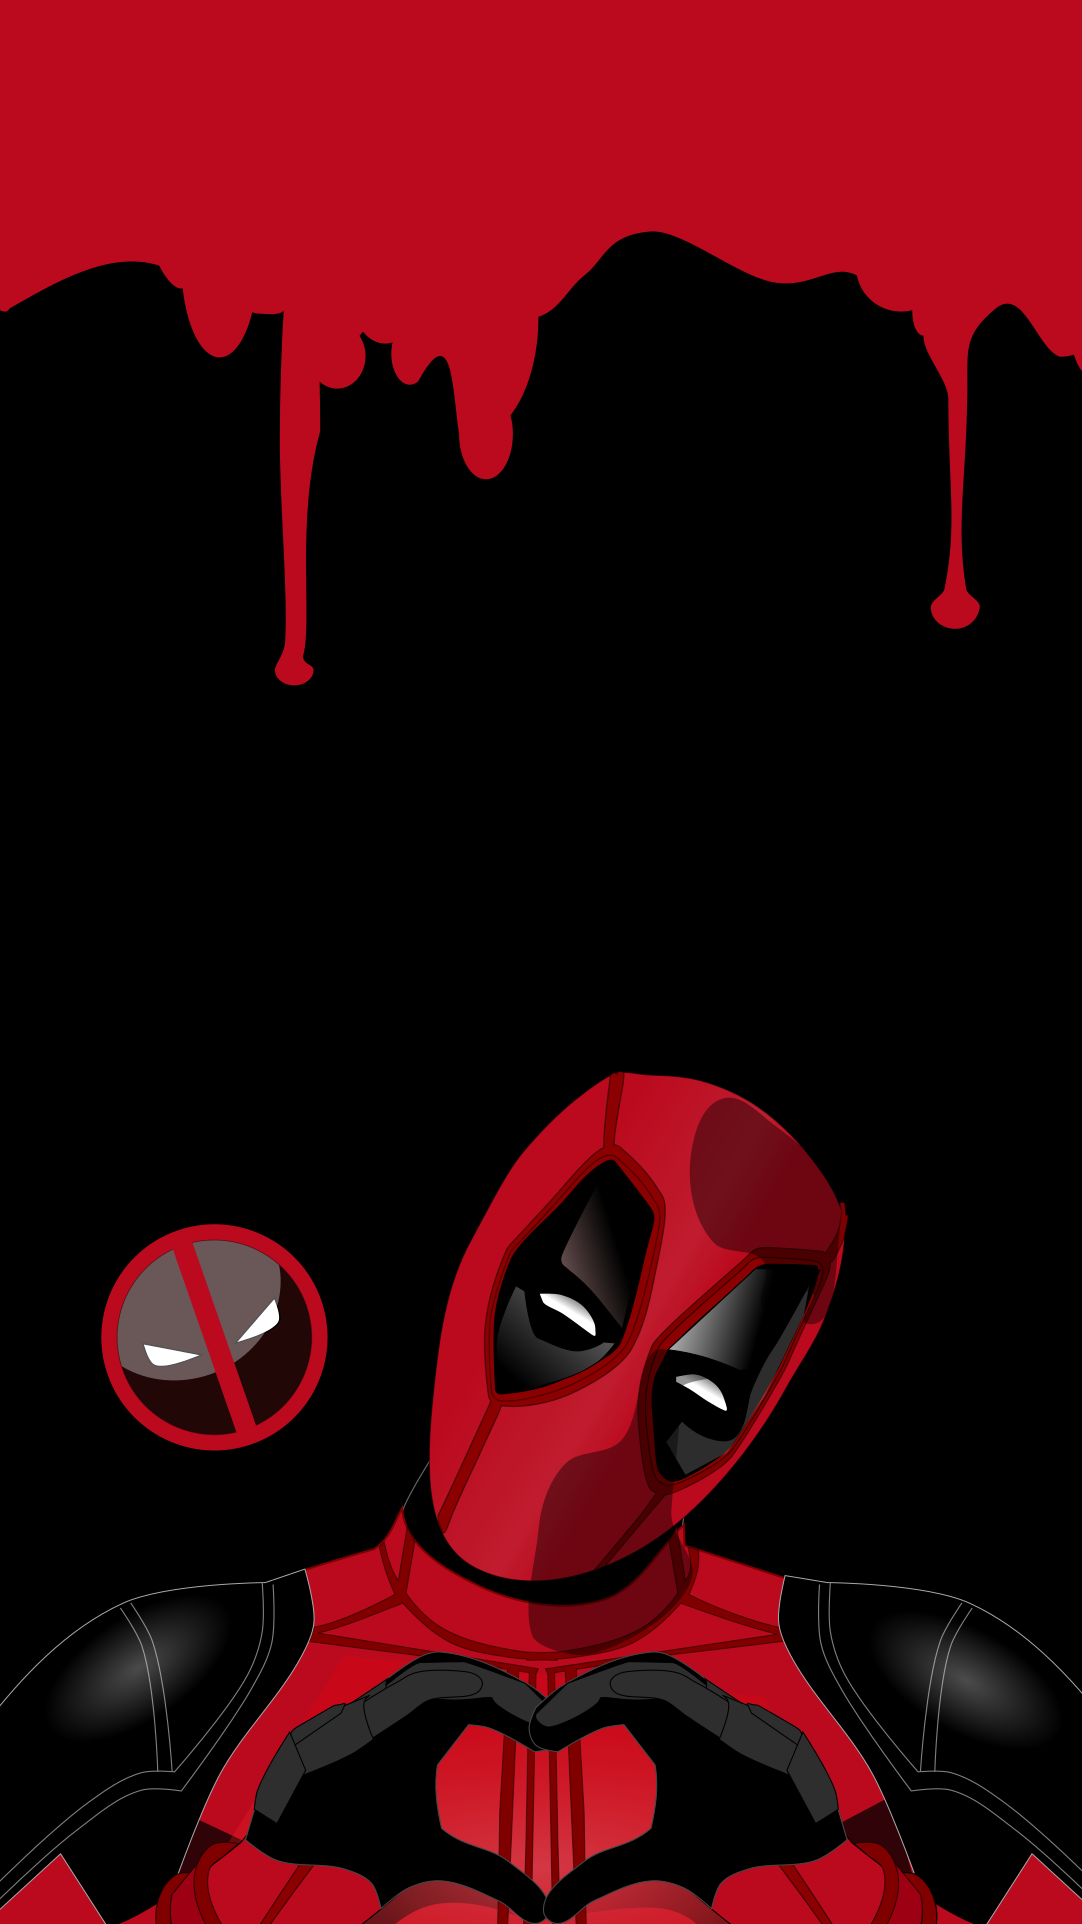 Deadpool [1080x1920] Need iPhone 6S Plus Wallpaper/